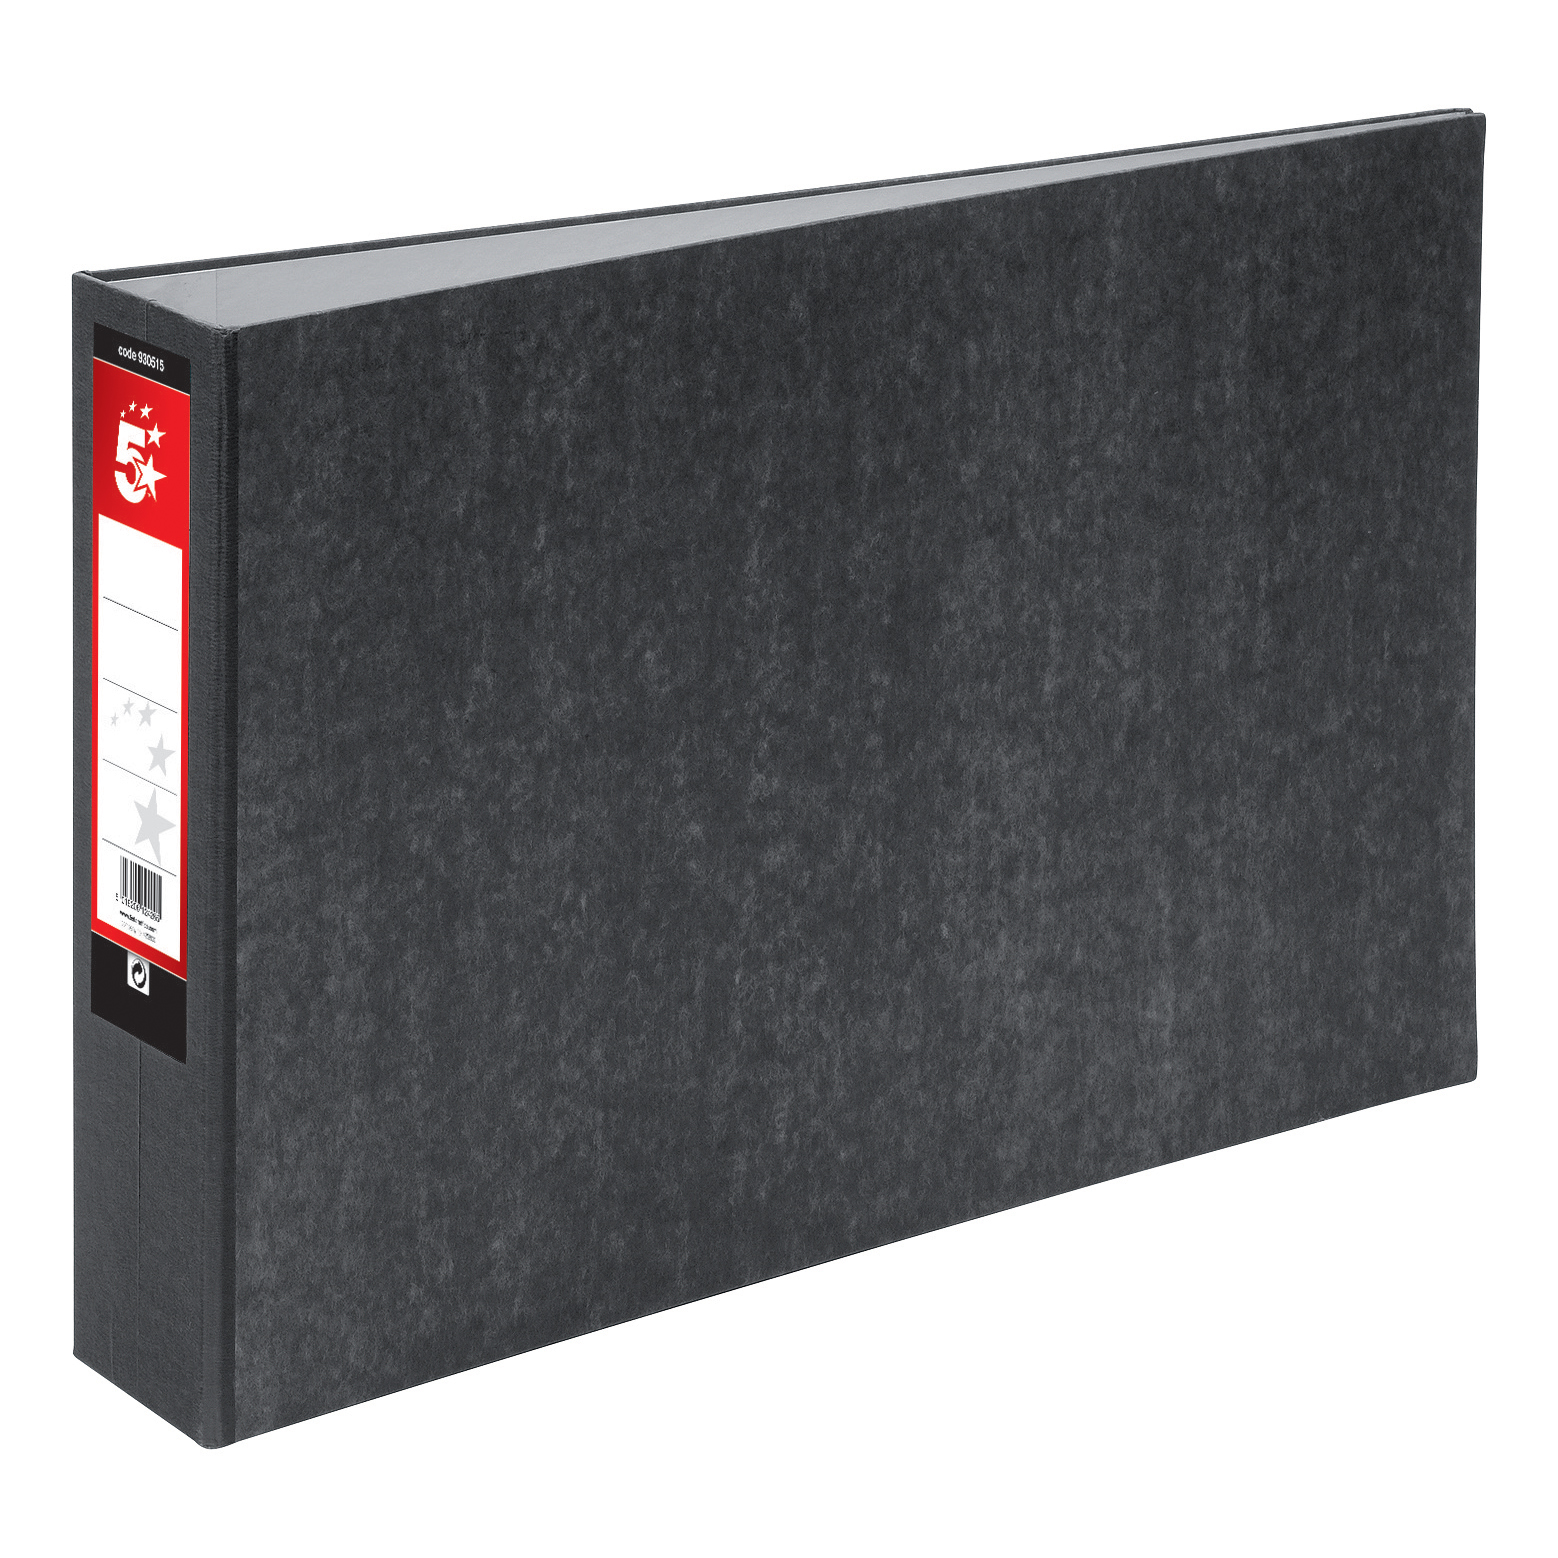 5 Star Office Lever Arch File 70mm Spine Oblong Landscape A3 Cloudy Grey